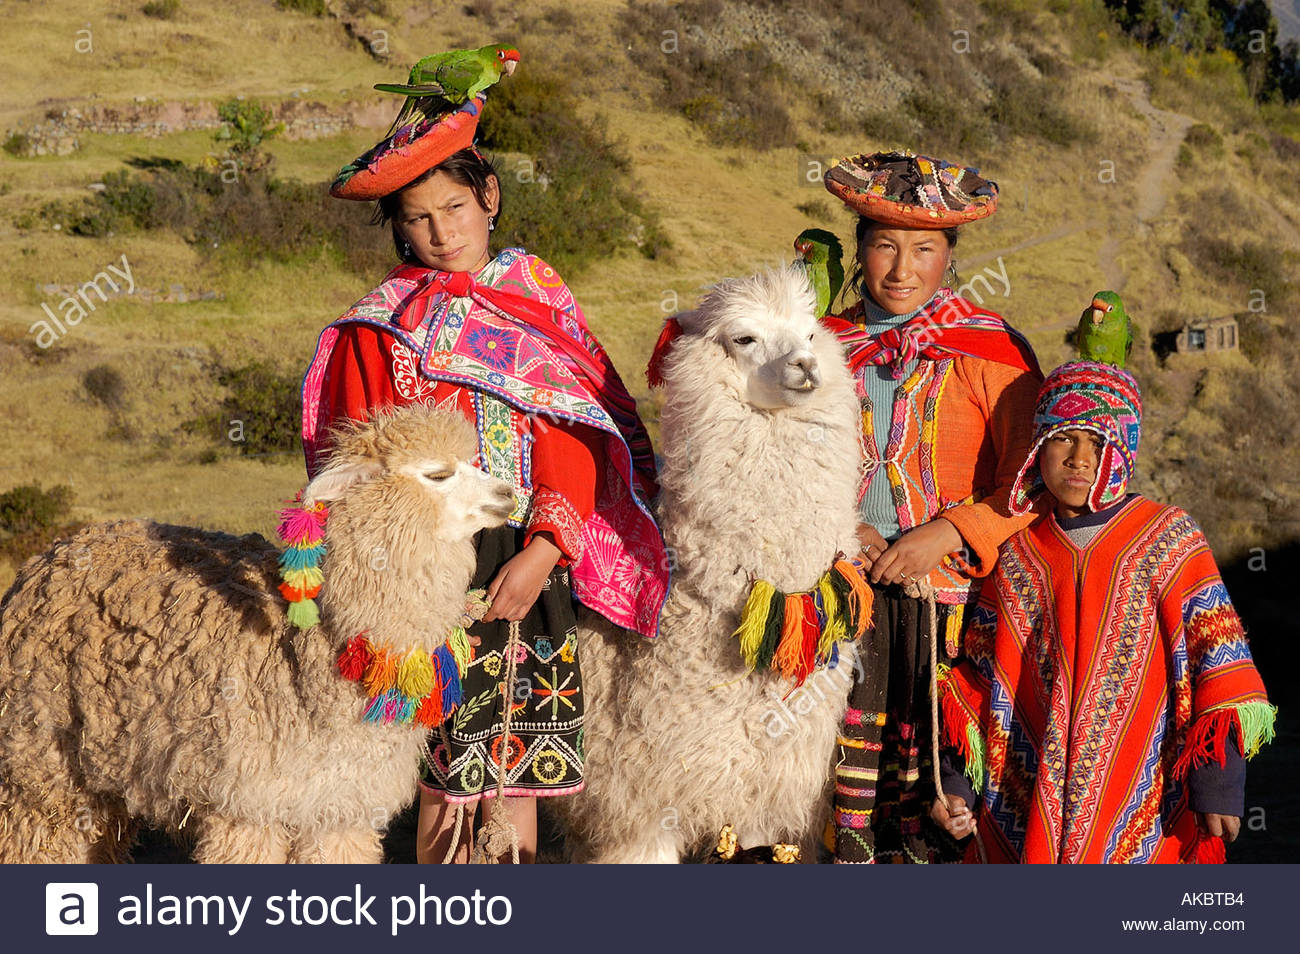 Women With Child In Native Dress And Hat Holding Llamas Peru - Stock Image